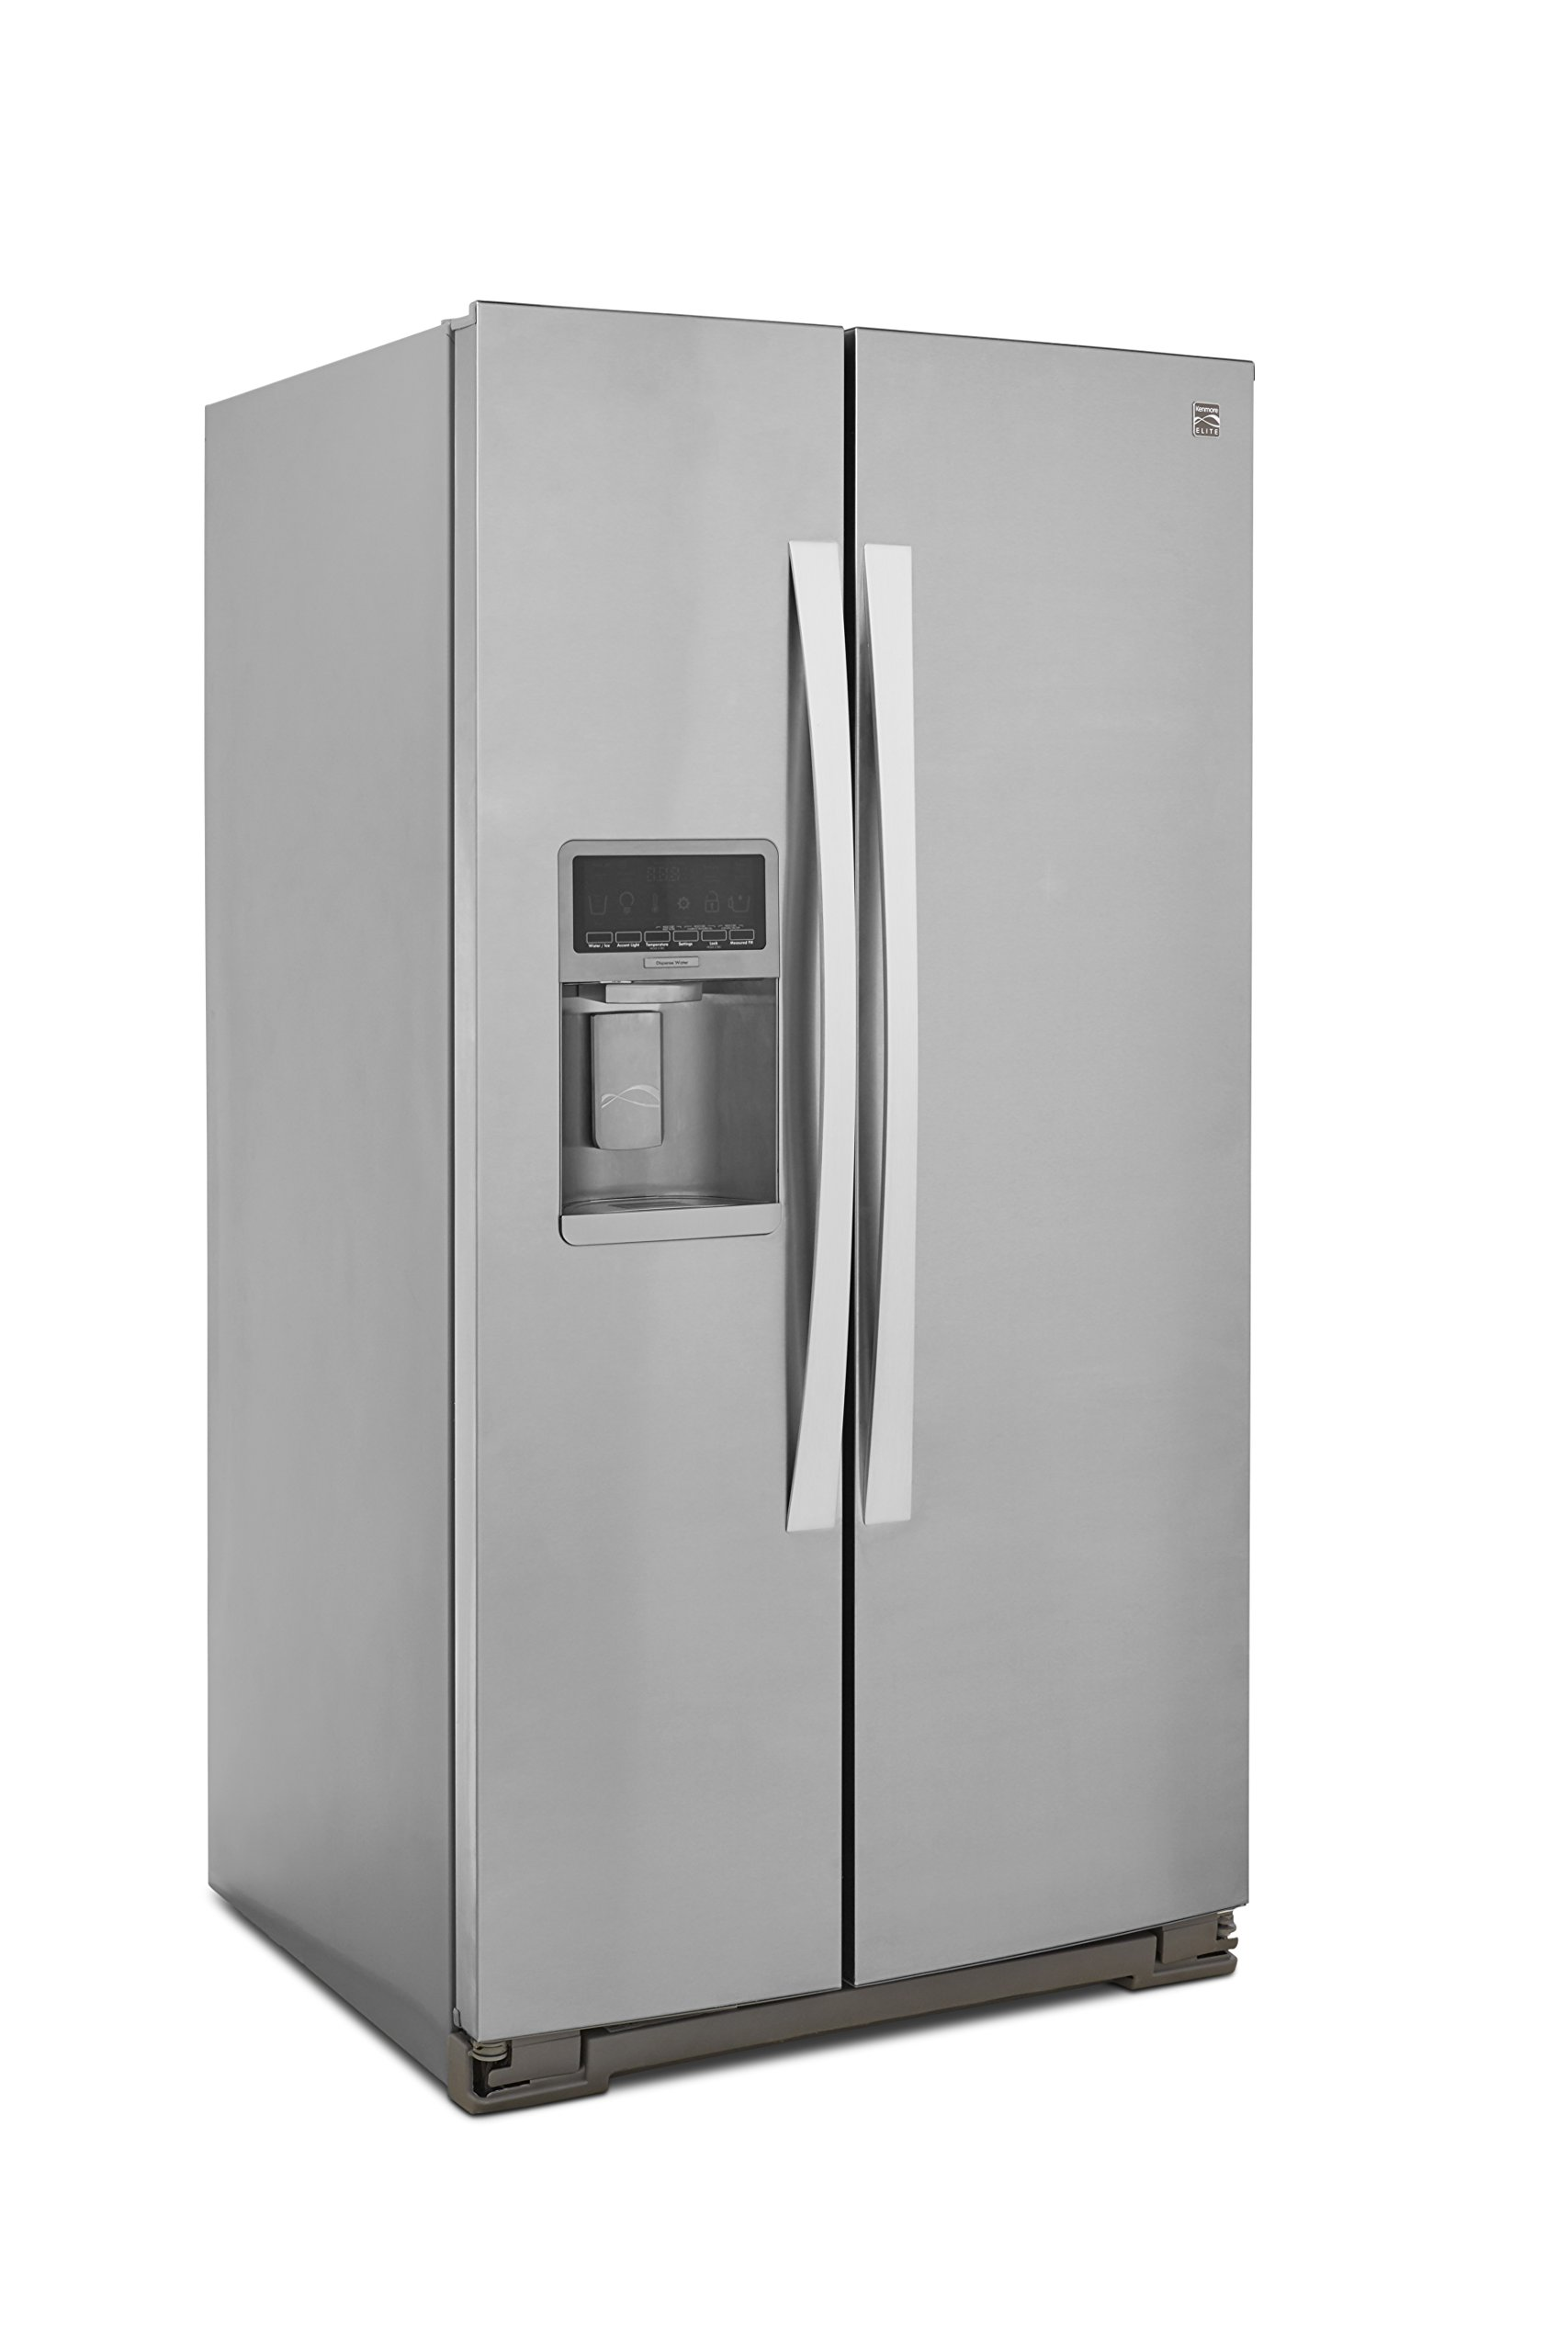 Kenmore Elite 51773 28 cu. ft. Side-by-Side Refrigerator with Accela Ice Technology in Stainless Steel, includes delivery and hookup (Available in select cities only) by Kenmore (Image #3)